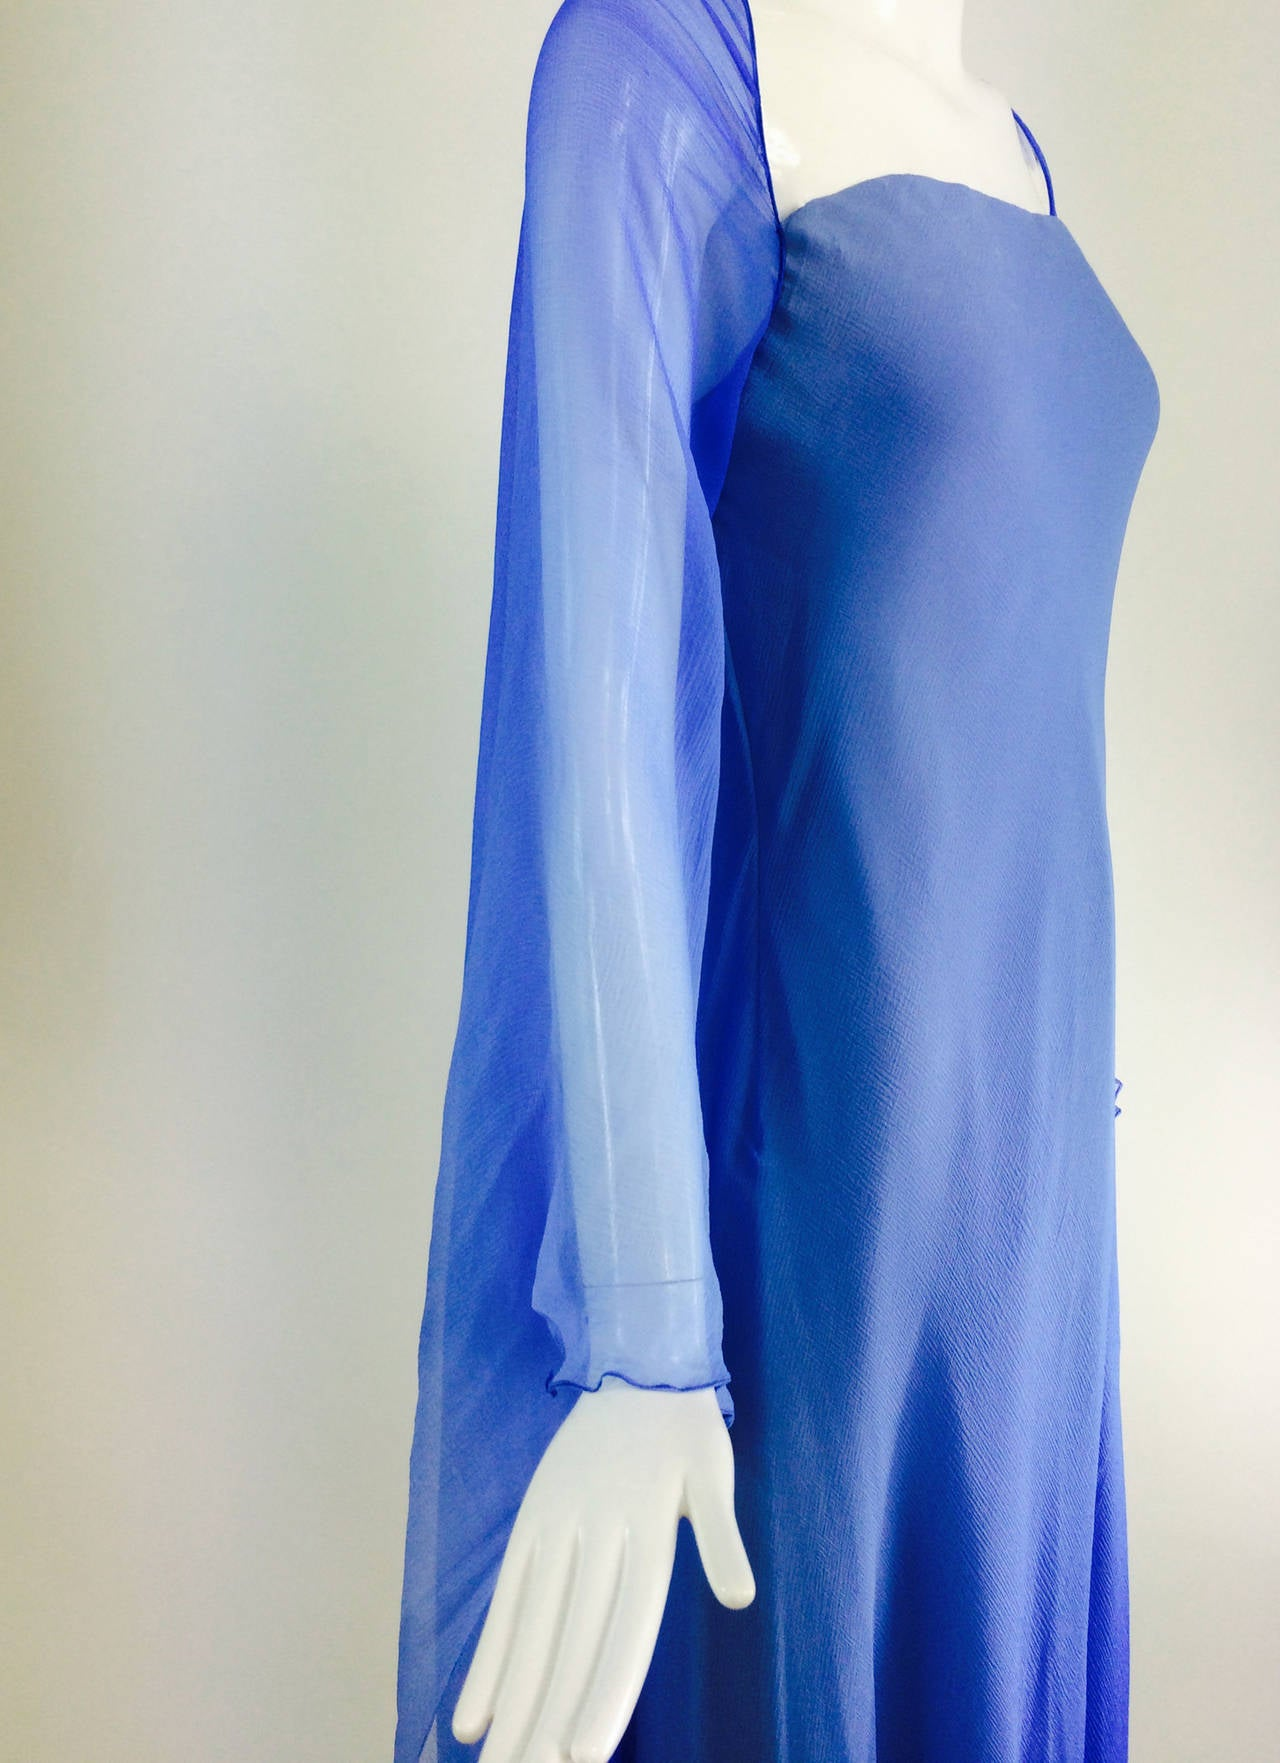 Fiandaca Cerulean Blue tonal silk chiffon gown 1990s...Goddess style gown in graded shades of cerulean blue silk chiffon with an attached chiffon bat wing cape...The strapless gown is fitted through the torso and flares to the hem...An attached